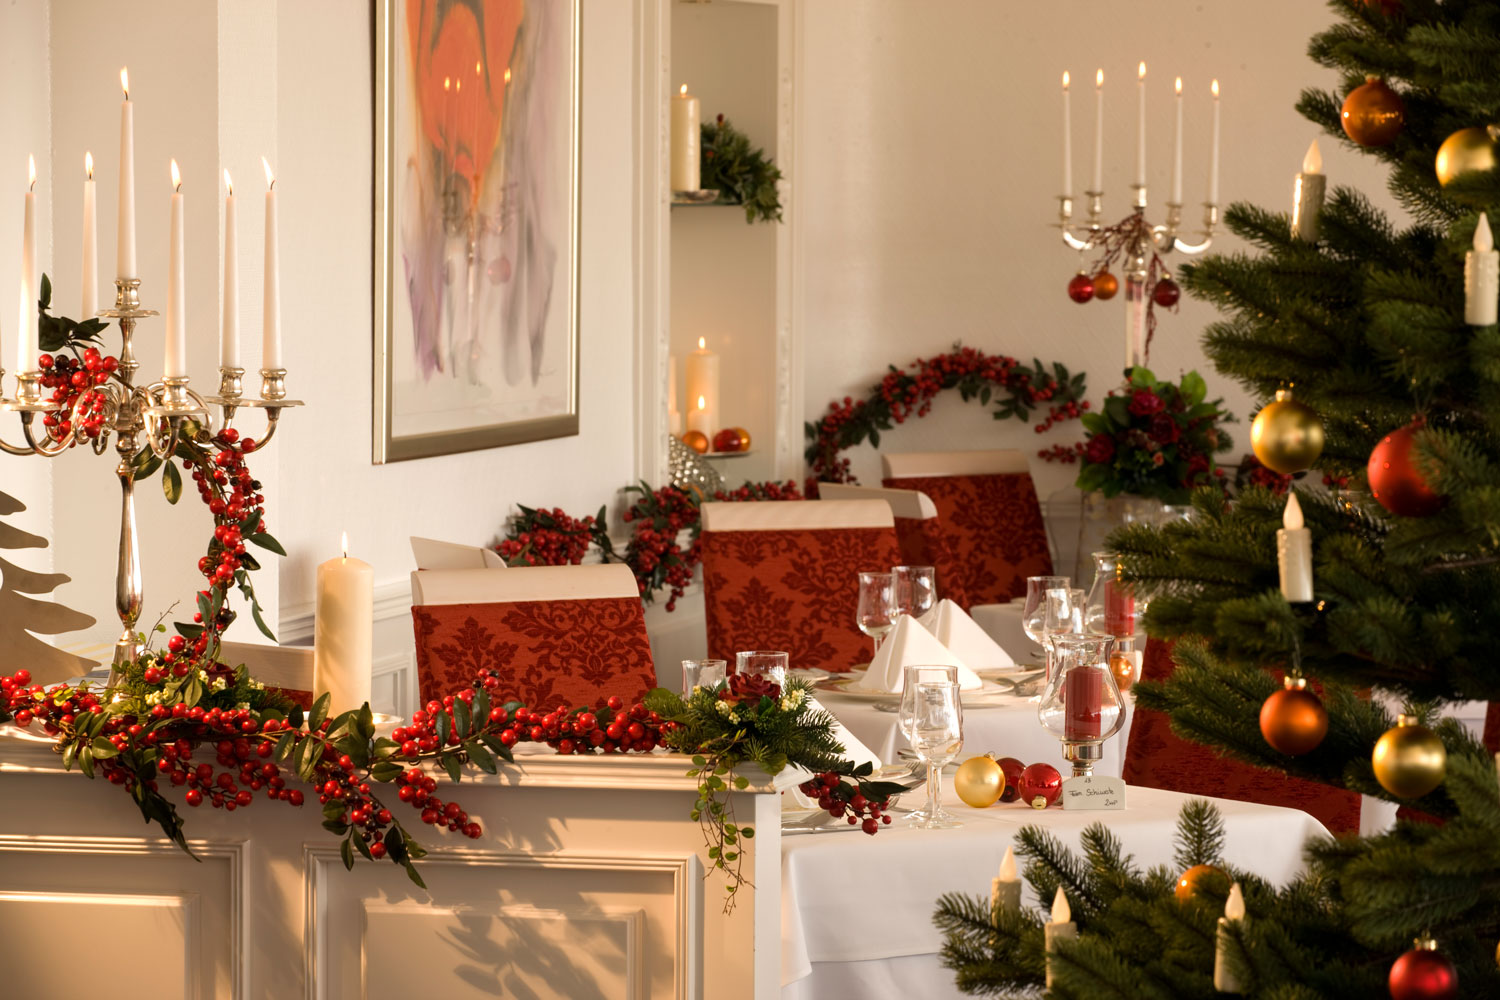 Weihnachten archive wellness hotels resorts blog Dekoration weihnachten